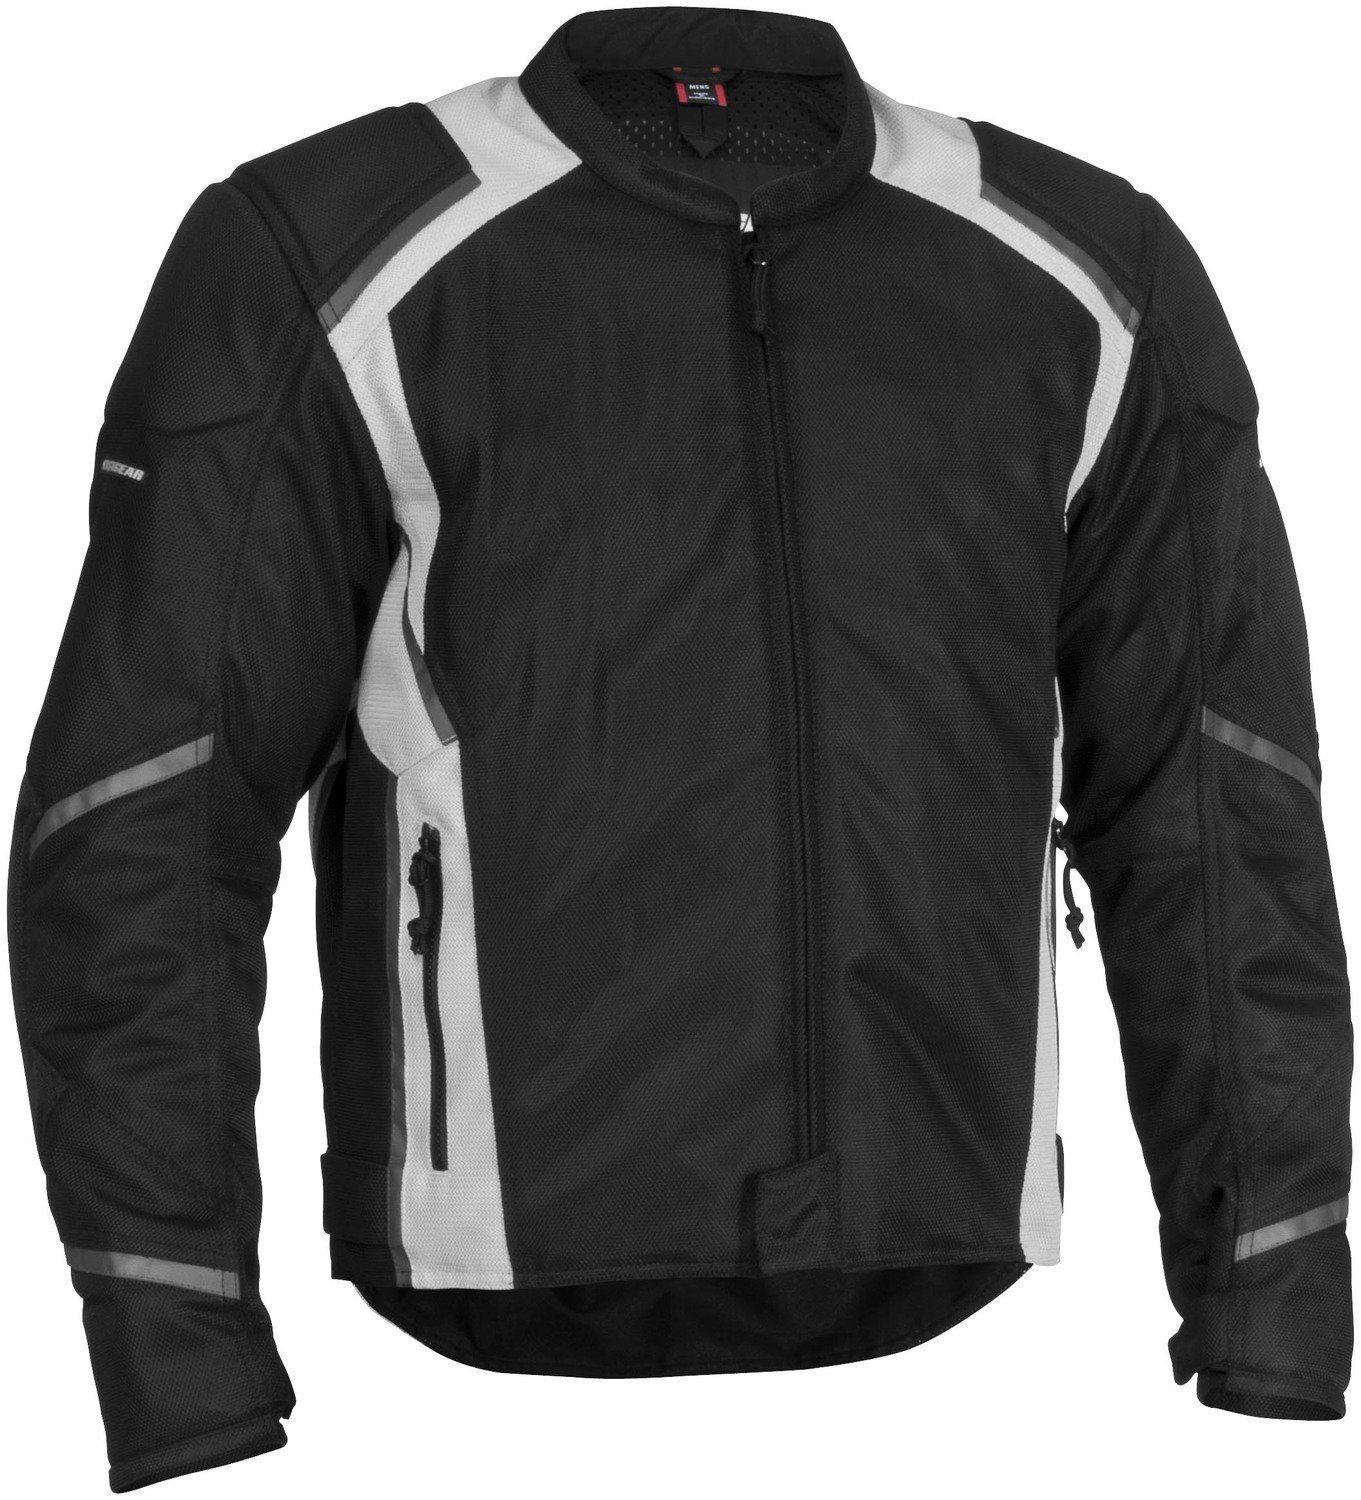 FirstGear Mesh Tex Men's Mesh Sports Bike Motorcycle Jacket - Black/Silver - Tall Large